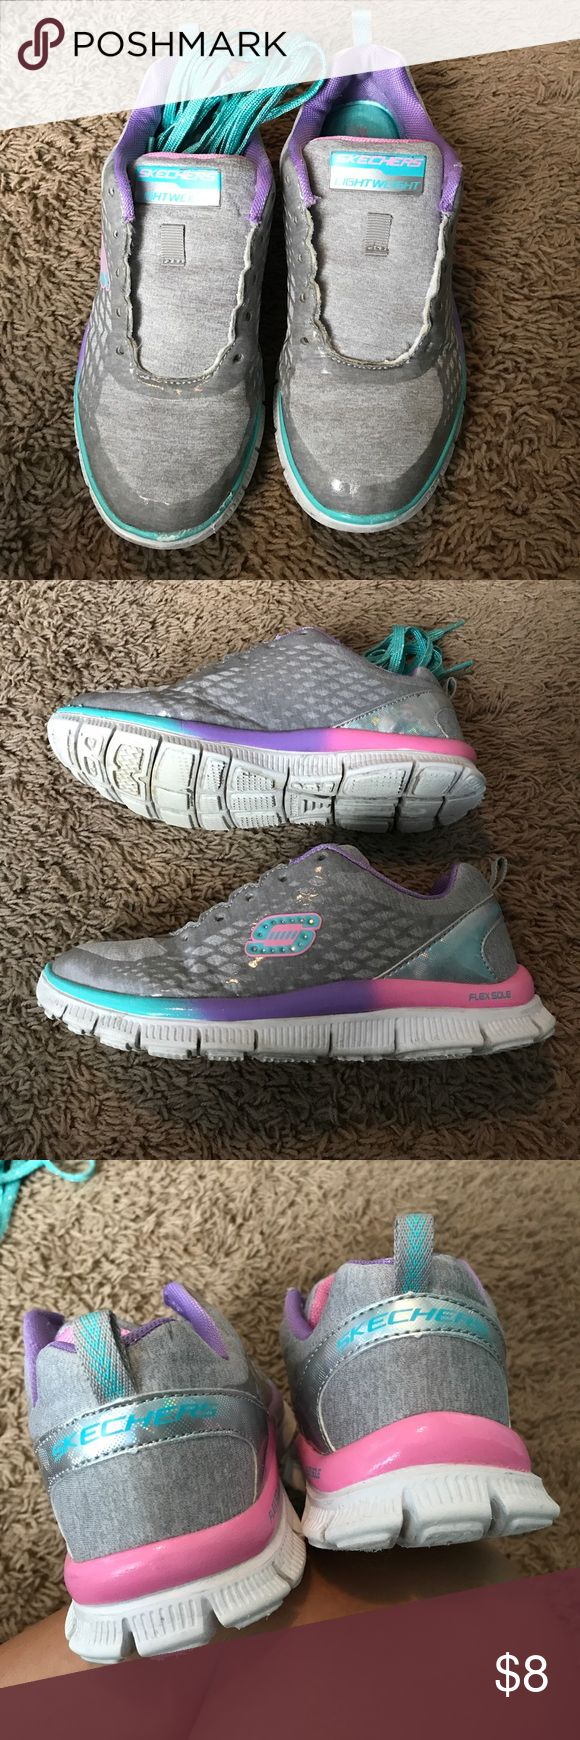 Girls Skechers with memory foam soles! Great shape, laces included I just haven't laced them back up after cleaning them! They look new except for some scuffing on the toe area that's pictured but not very noticeable! Skechers Shoes Sneakers